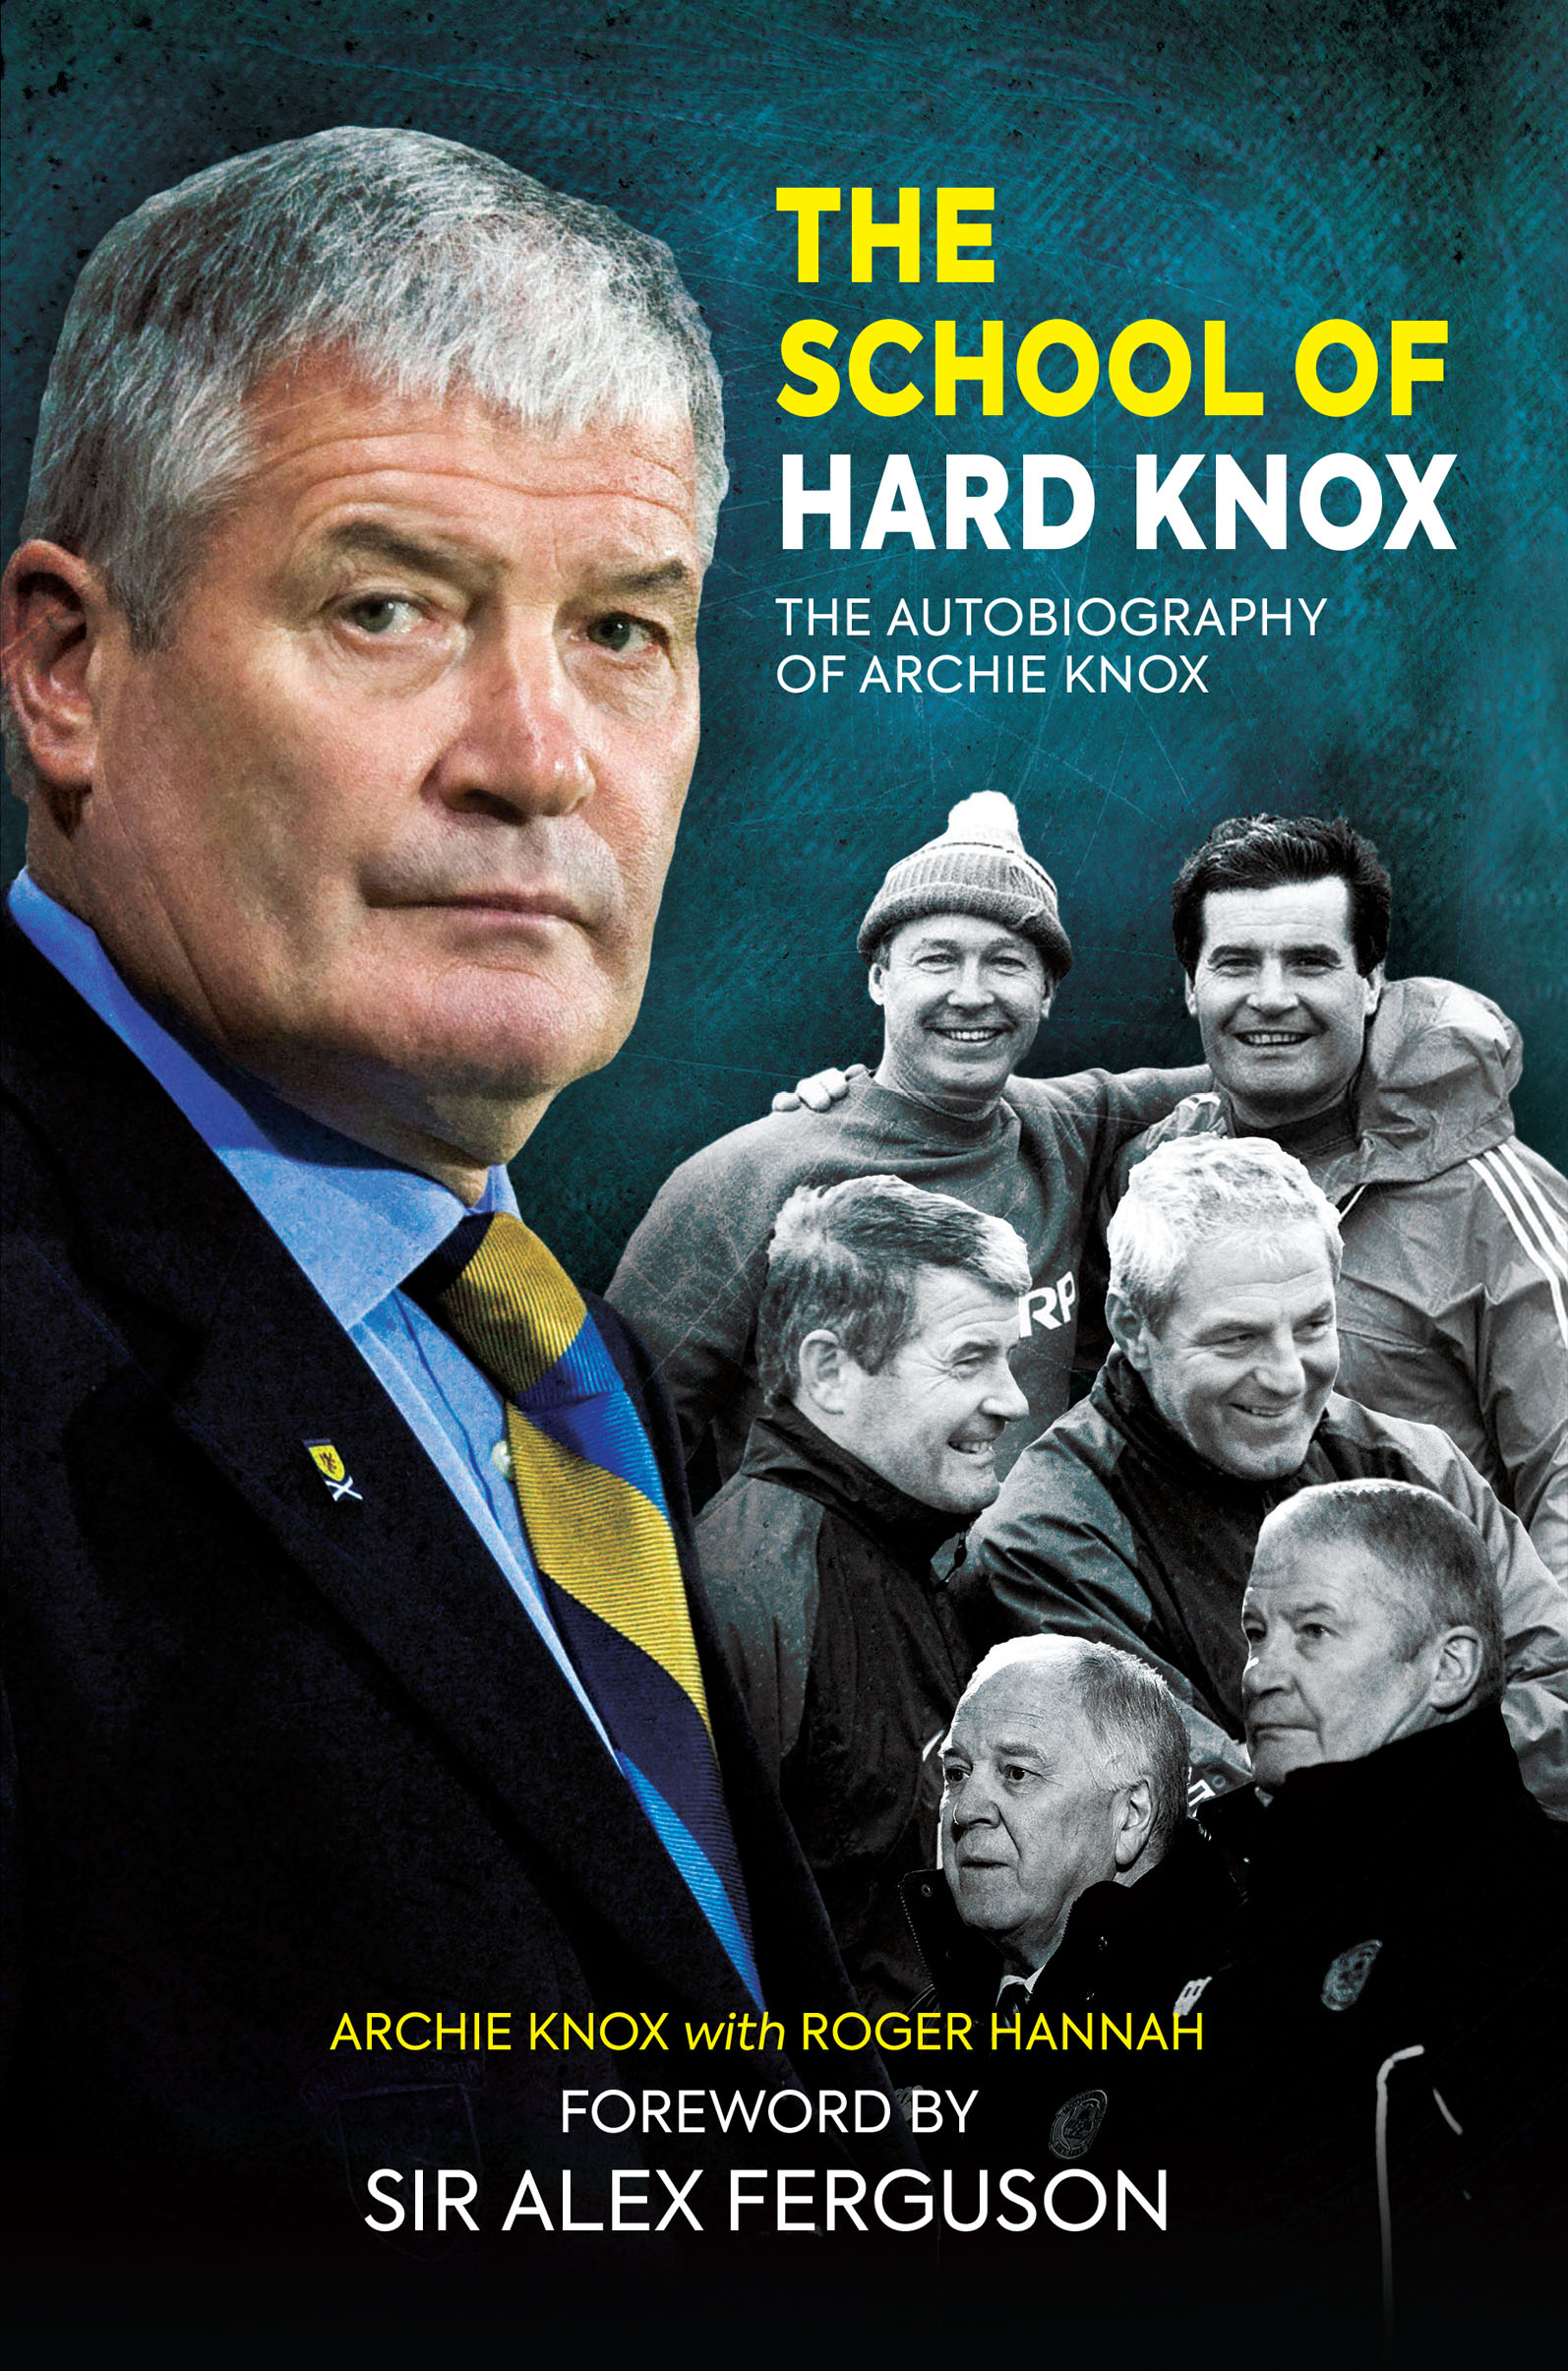 Ths School of Hard Knox book cover